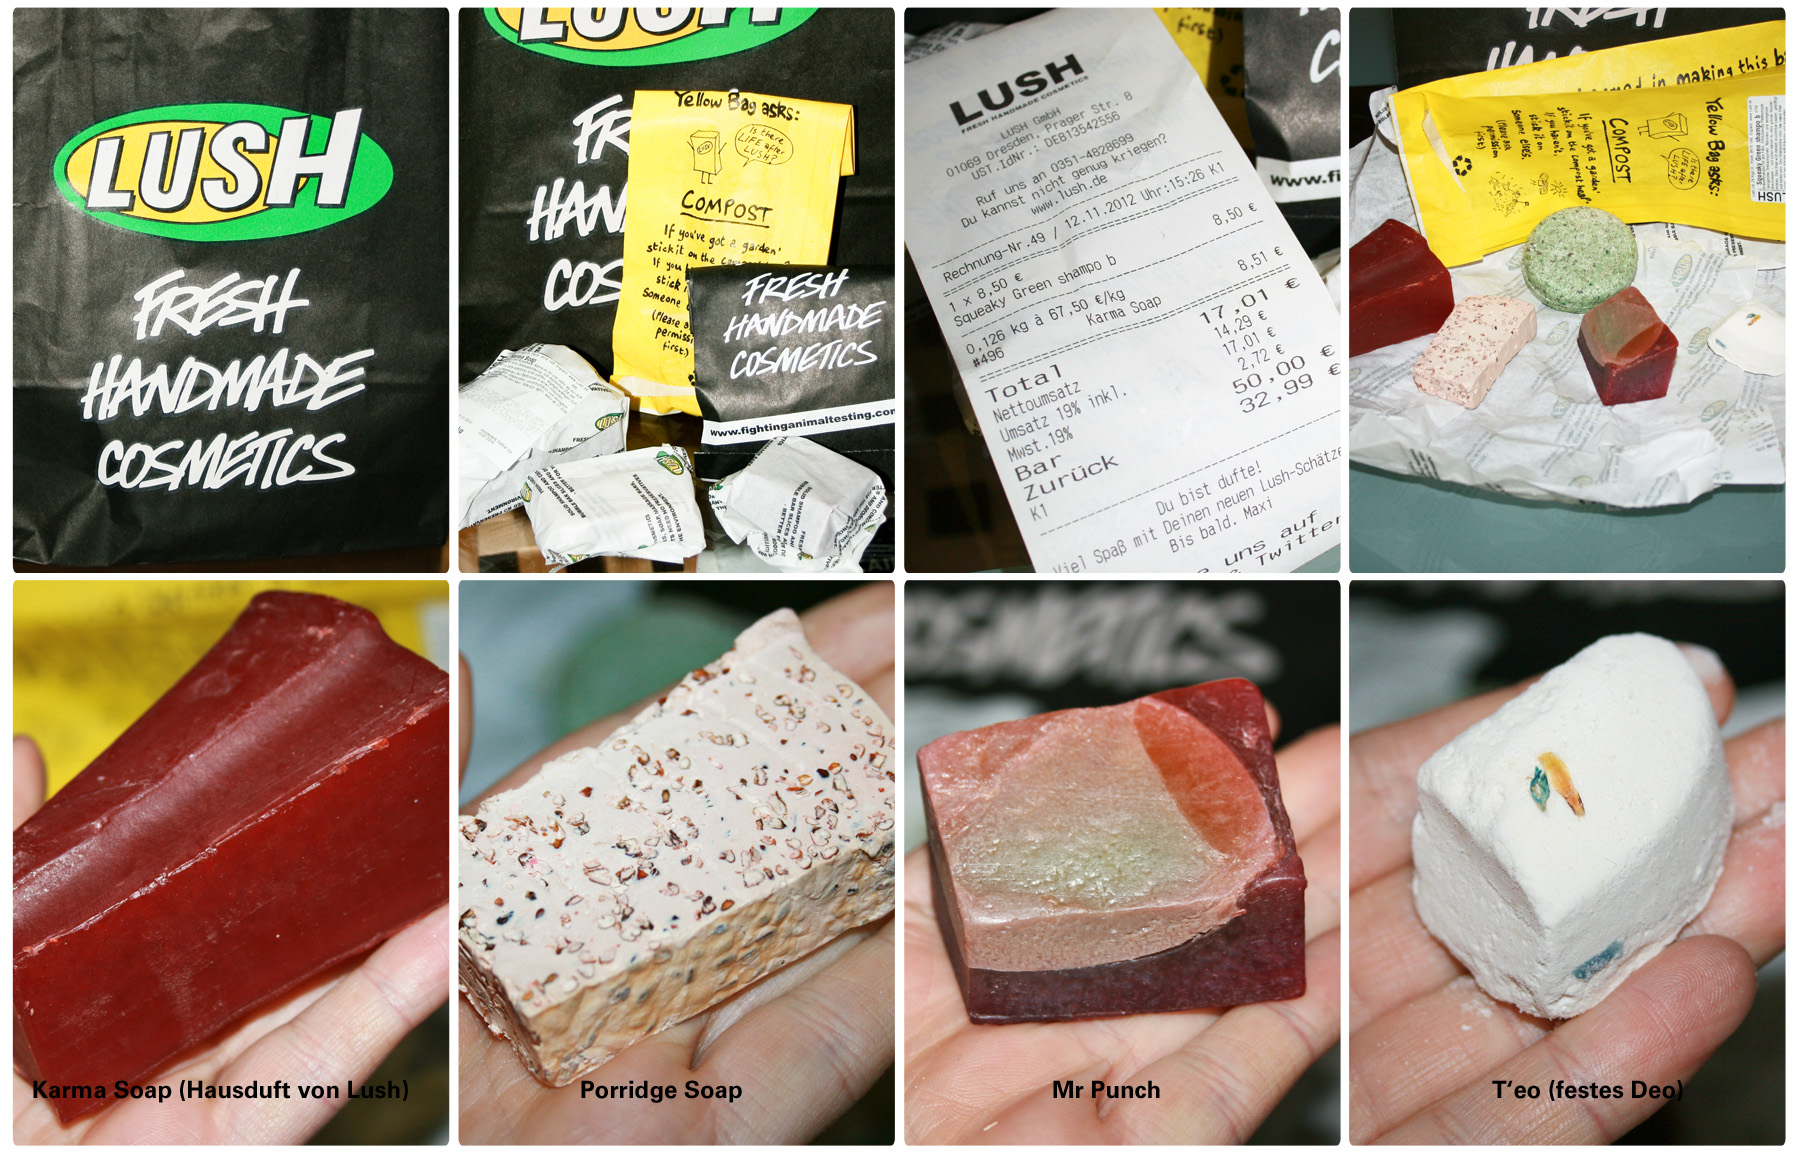 LUSH Seifen und Deo - Karma Soap, Porridge Soap, Mrs Punch Fruity, T'eo, Squeeky Green shampoo bar